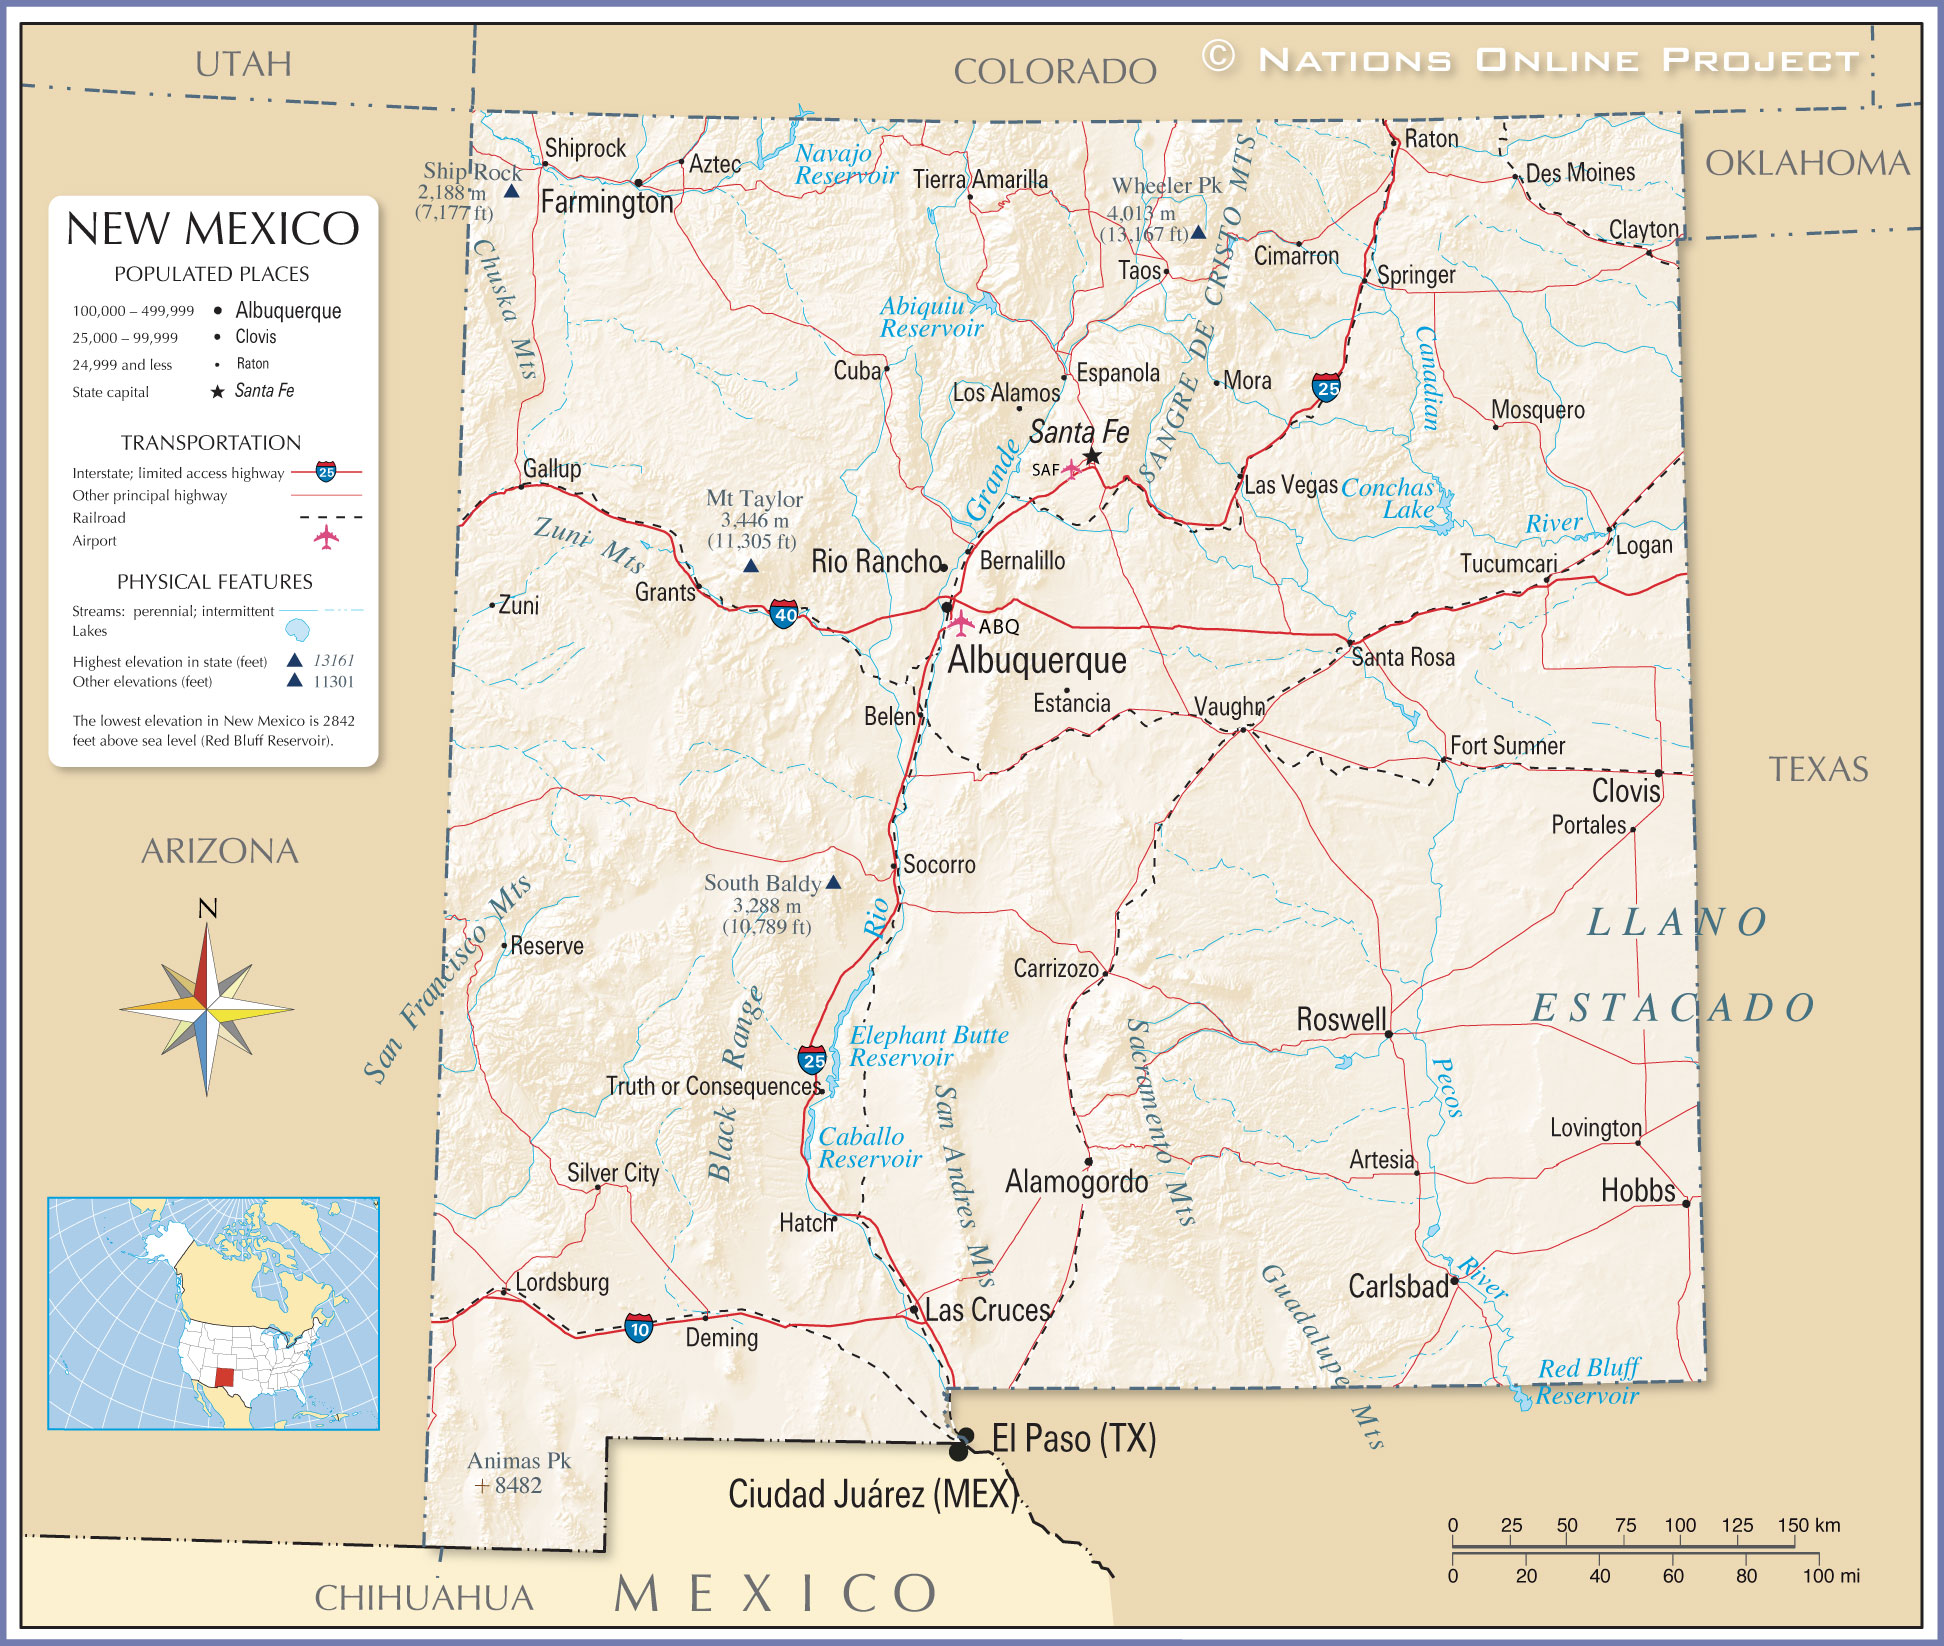 Reference Maps of New Mexico, USA - Nations Online Project